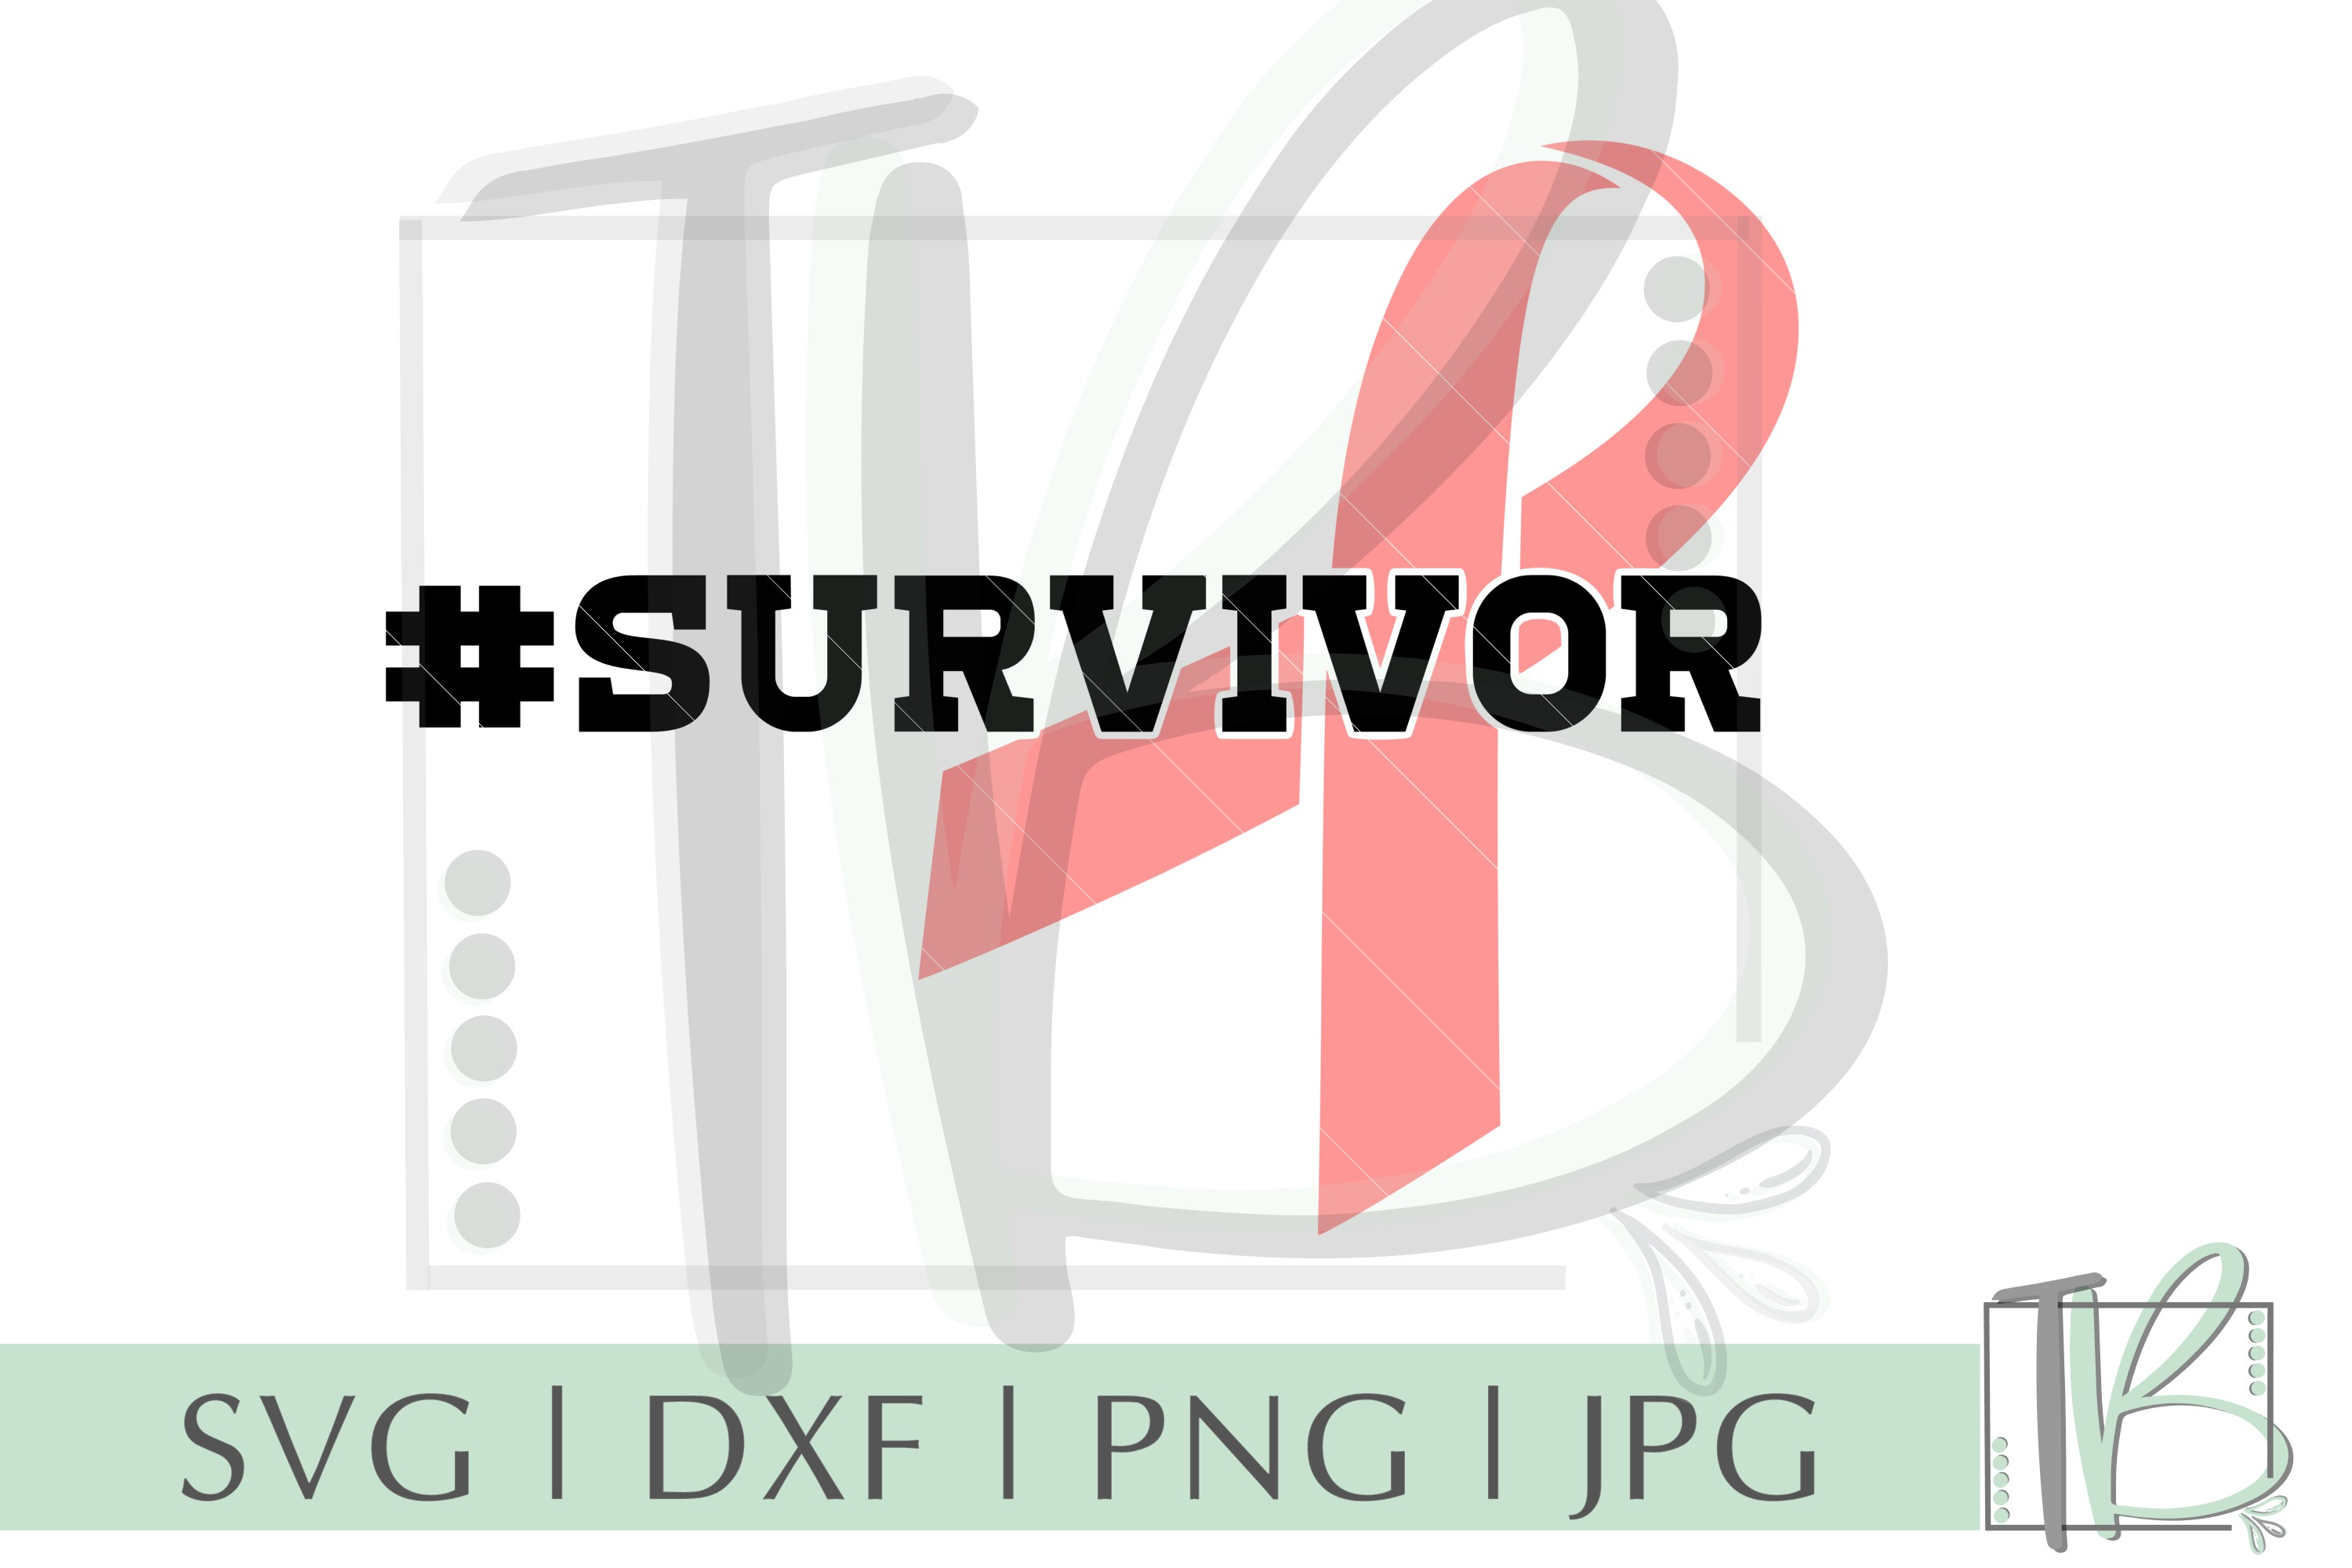 Breast Cancer SVG, Survivor SVG example image 2